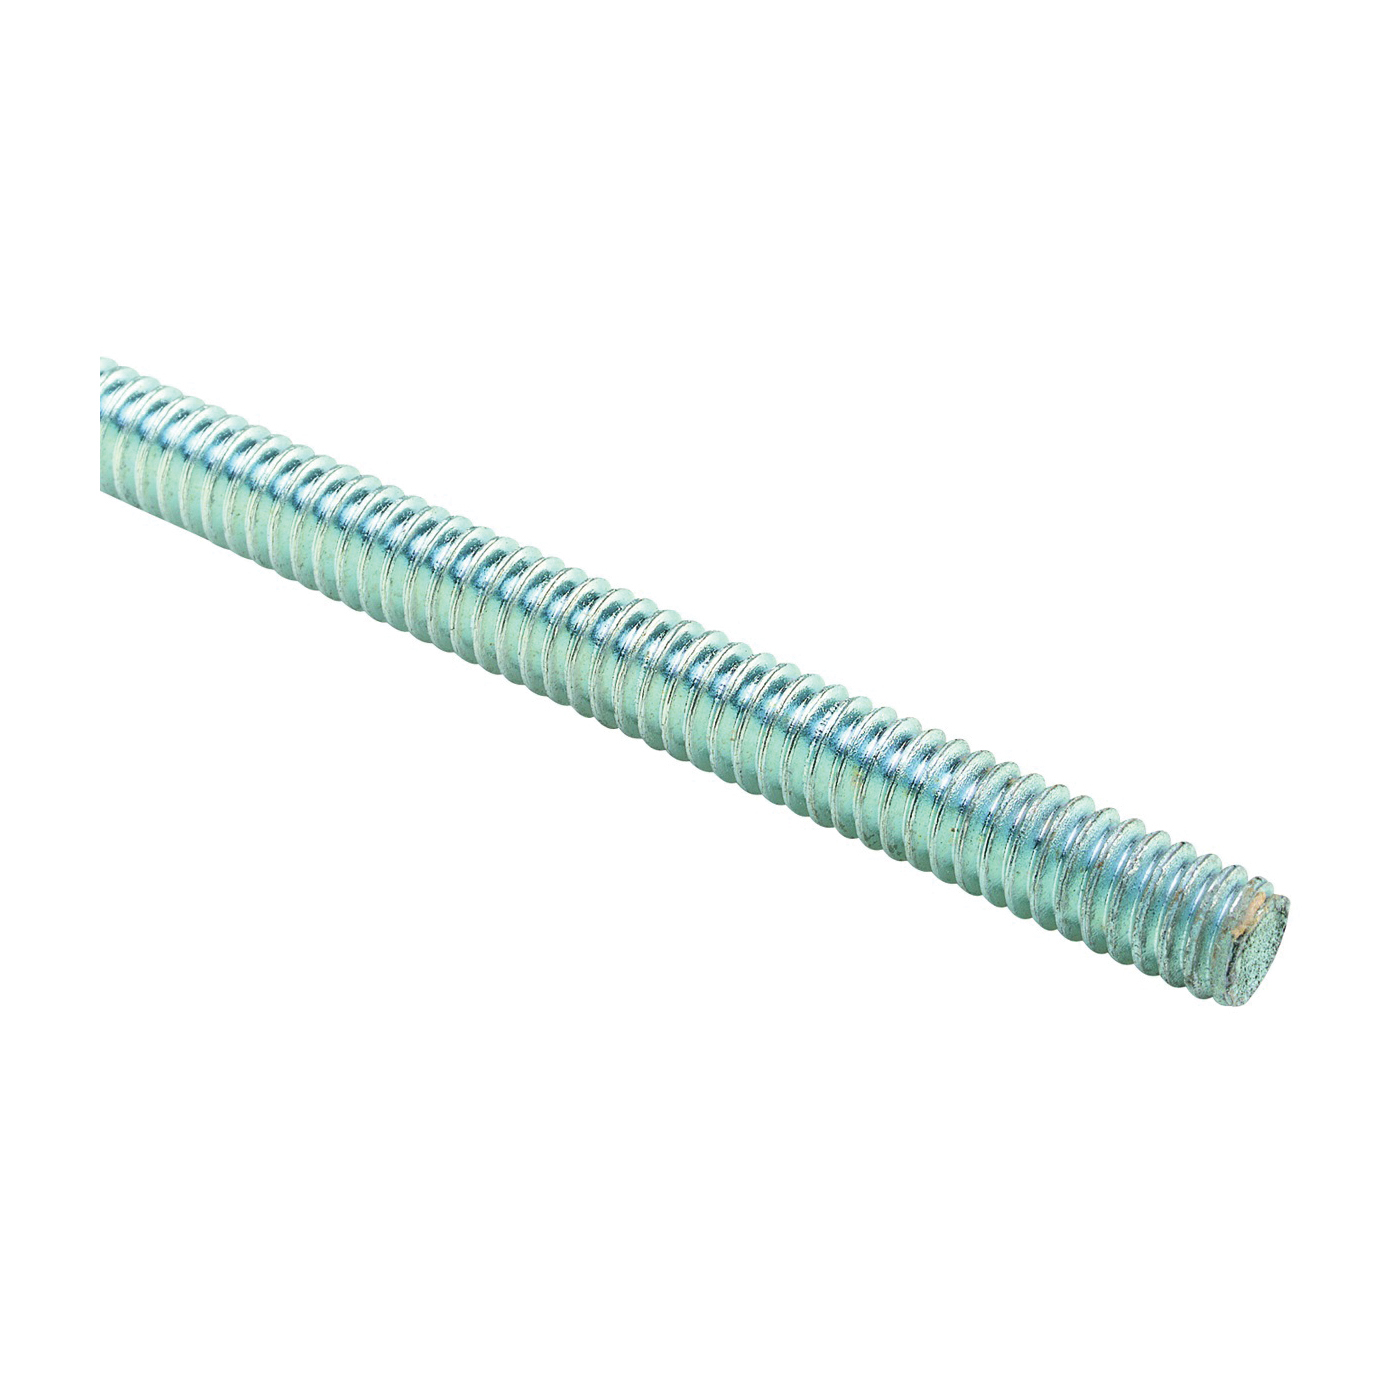 Picture of SuperStrut R Series ZR1038 Threaded Rod, Steel, Silver, Galvanized